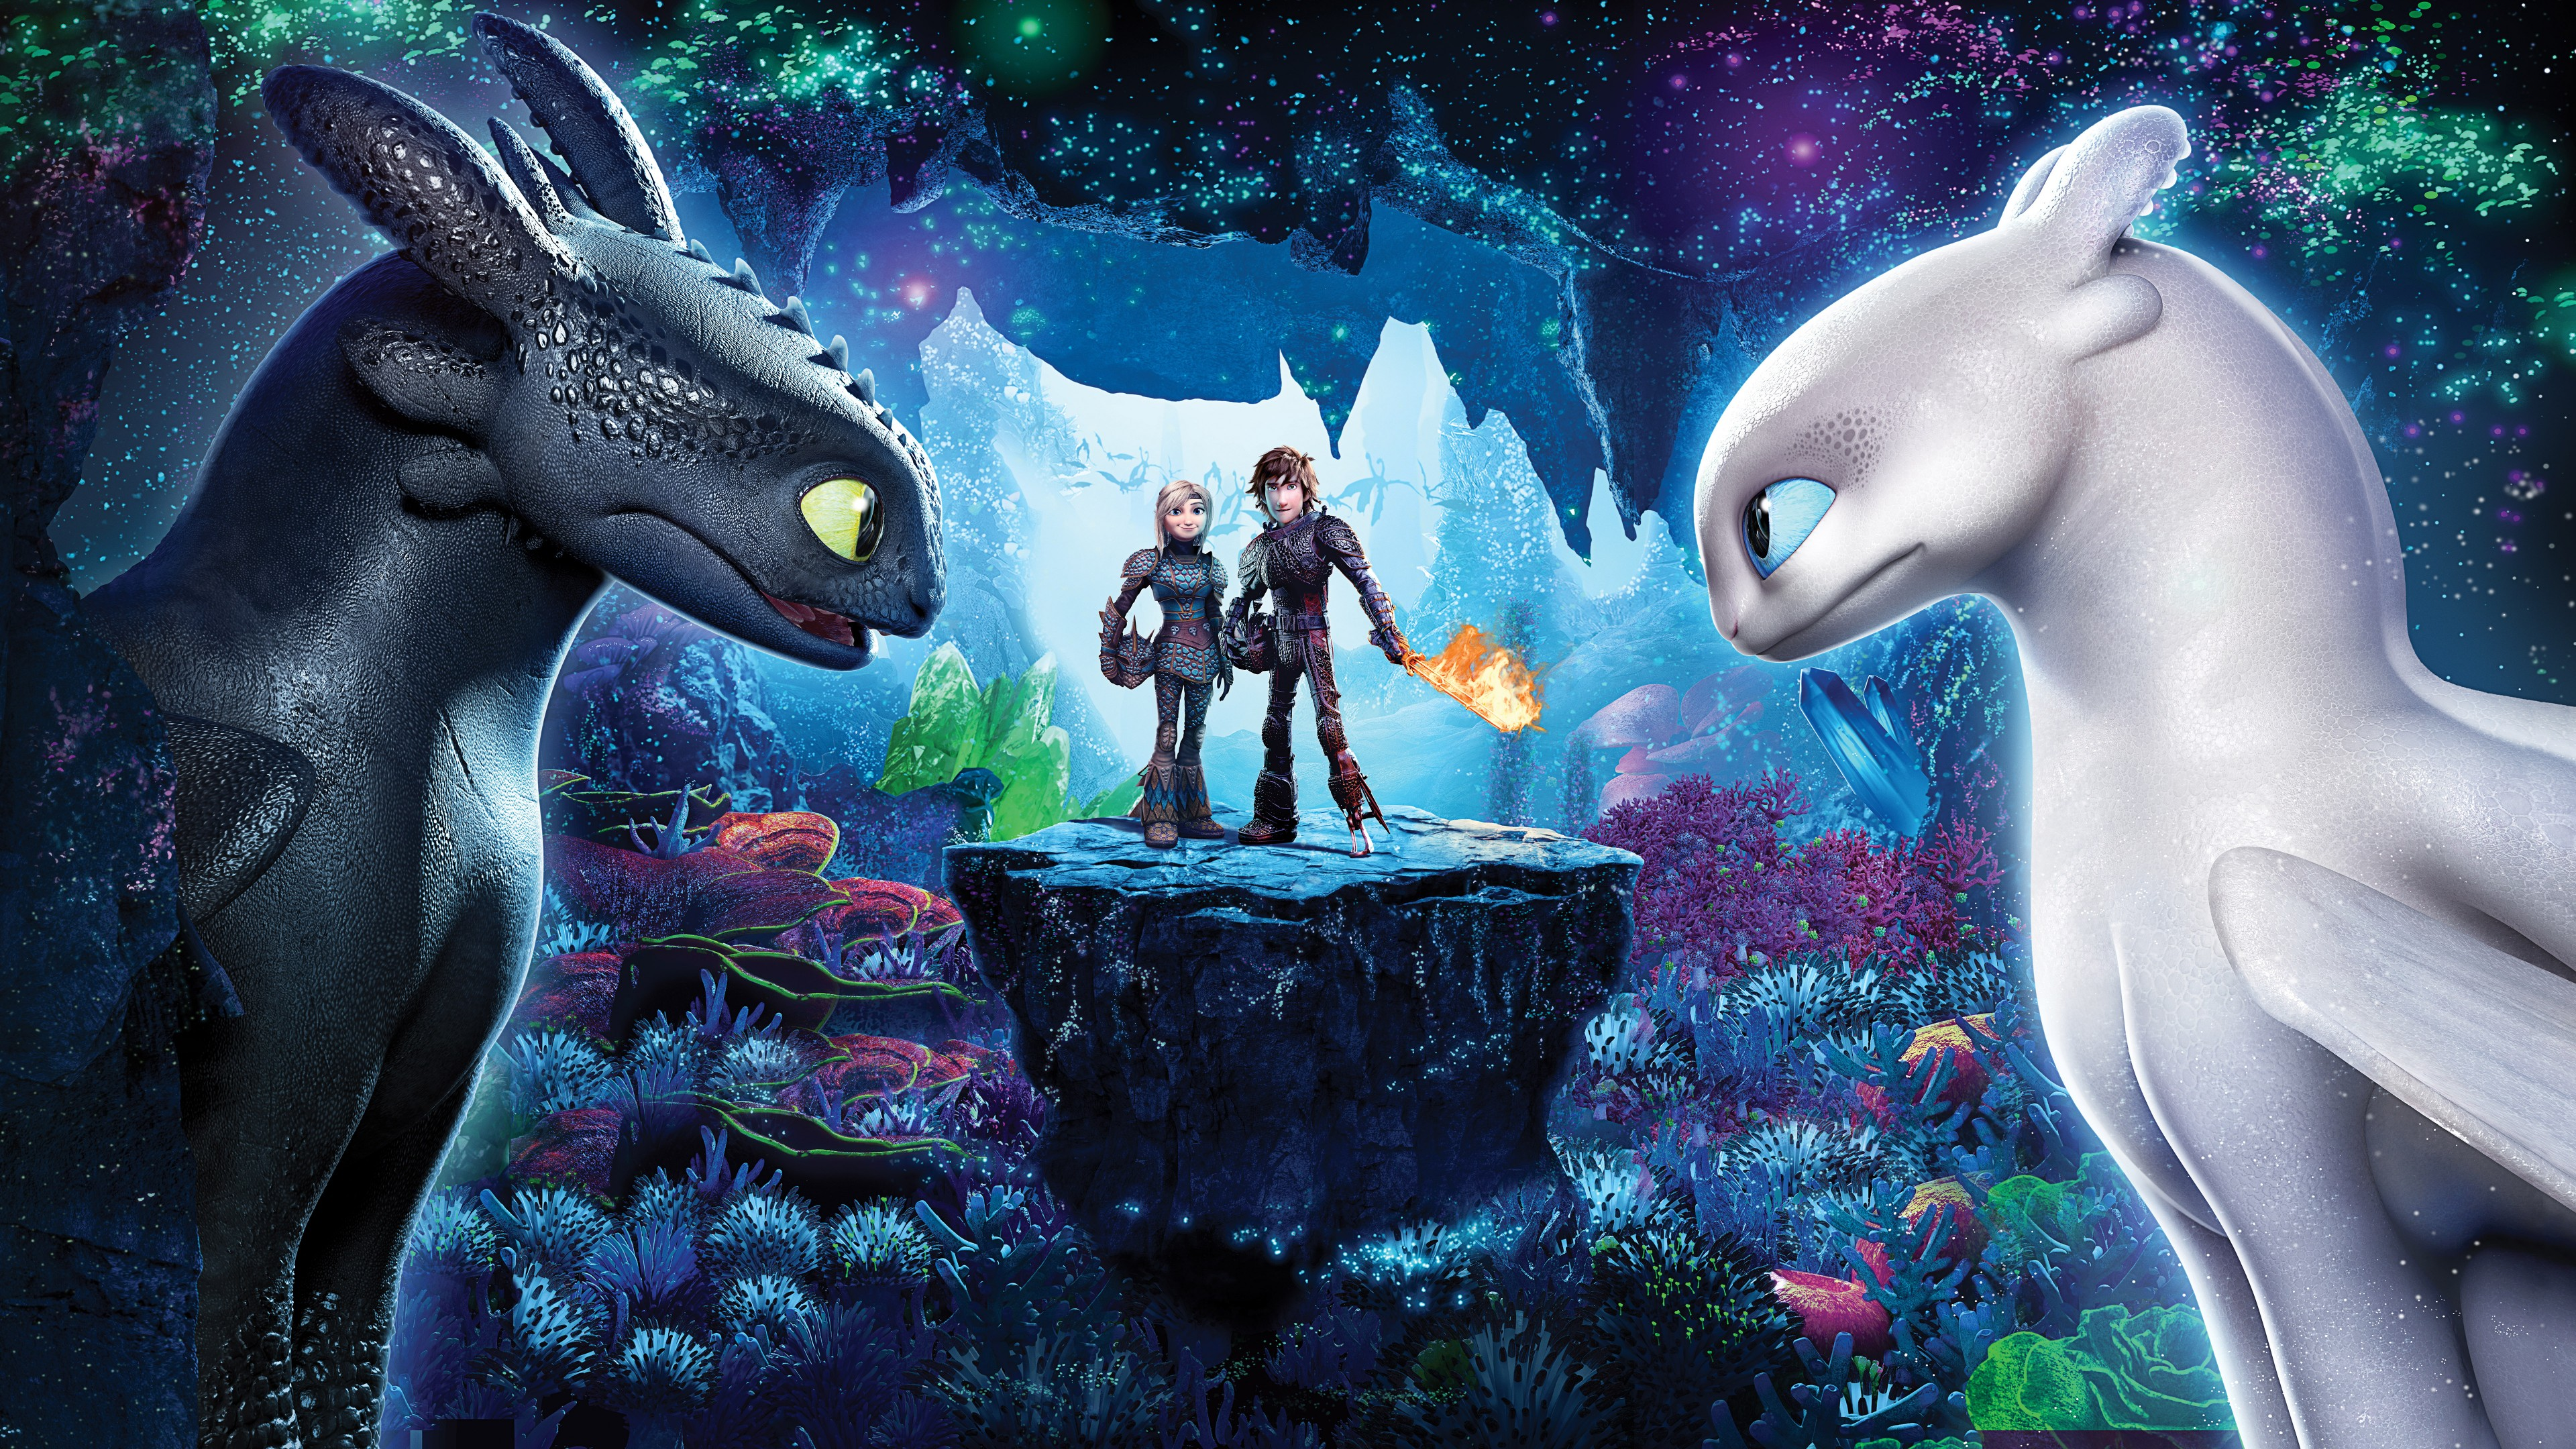 How To Train Your Dragon 3 The Hidden World HD Wallpaper Download